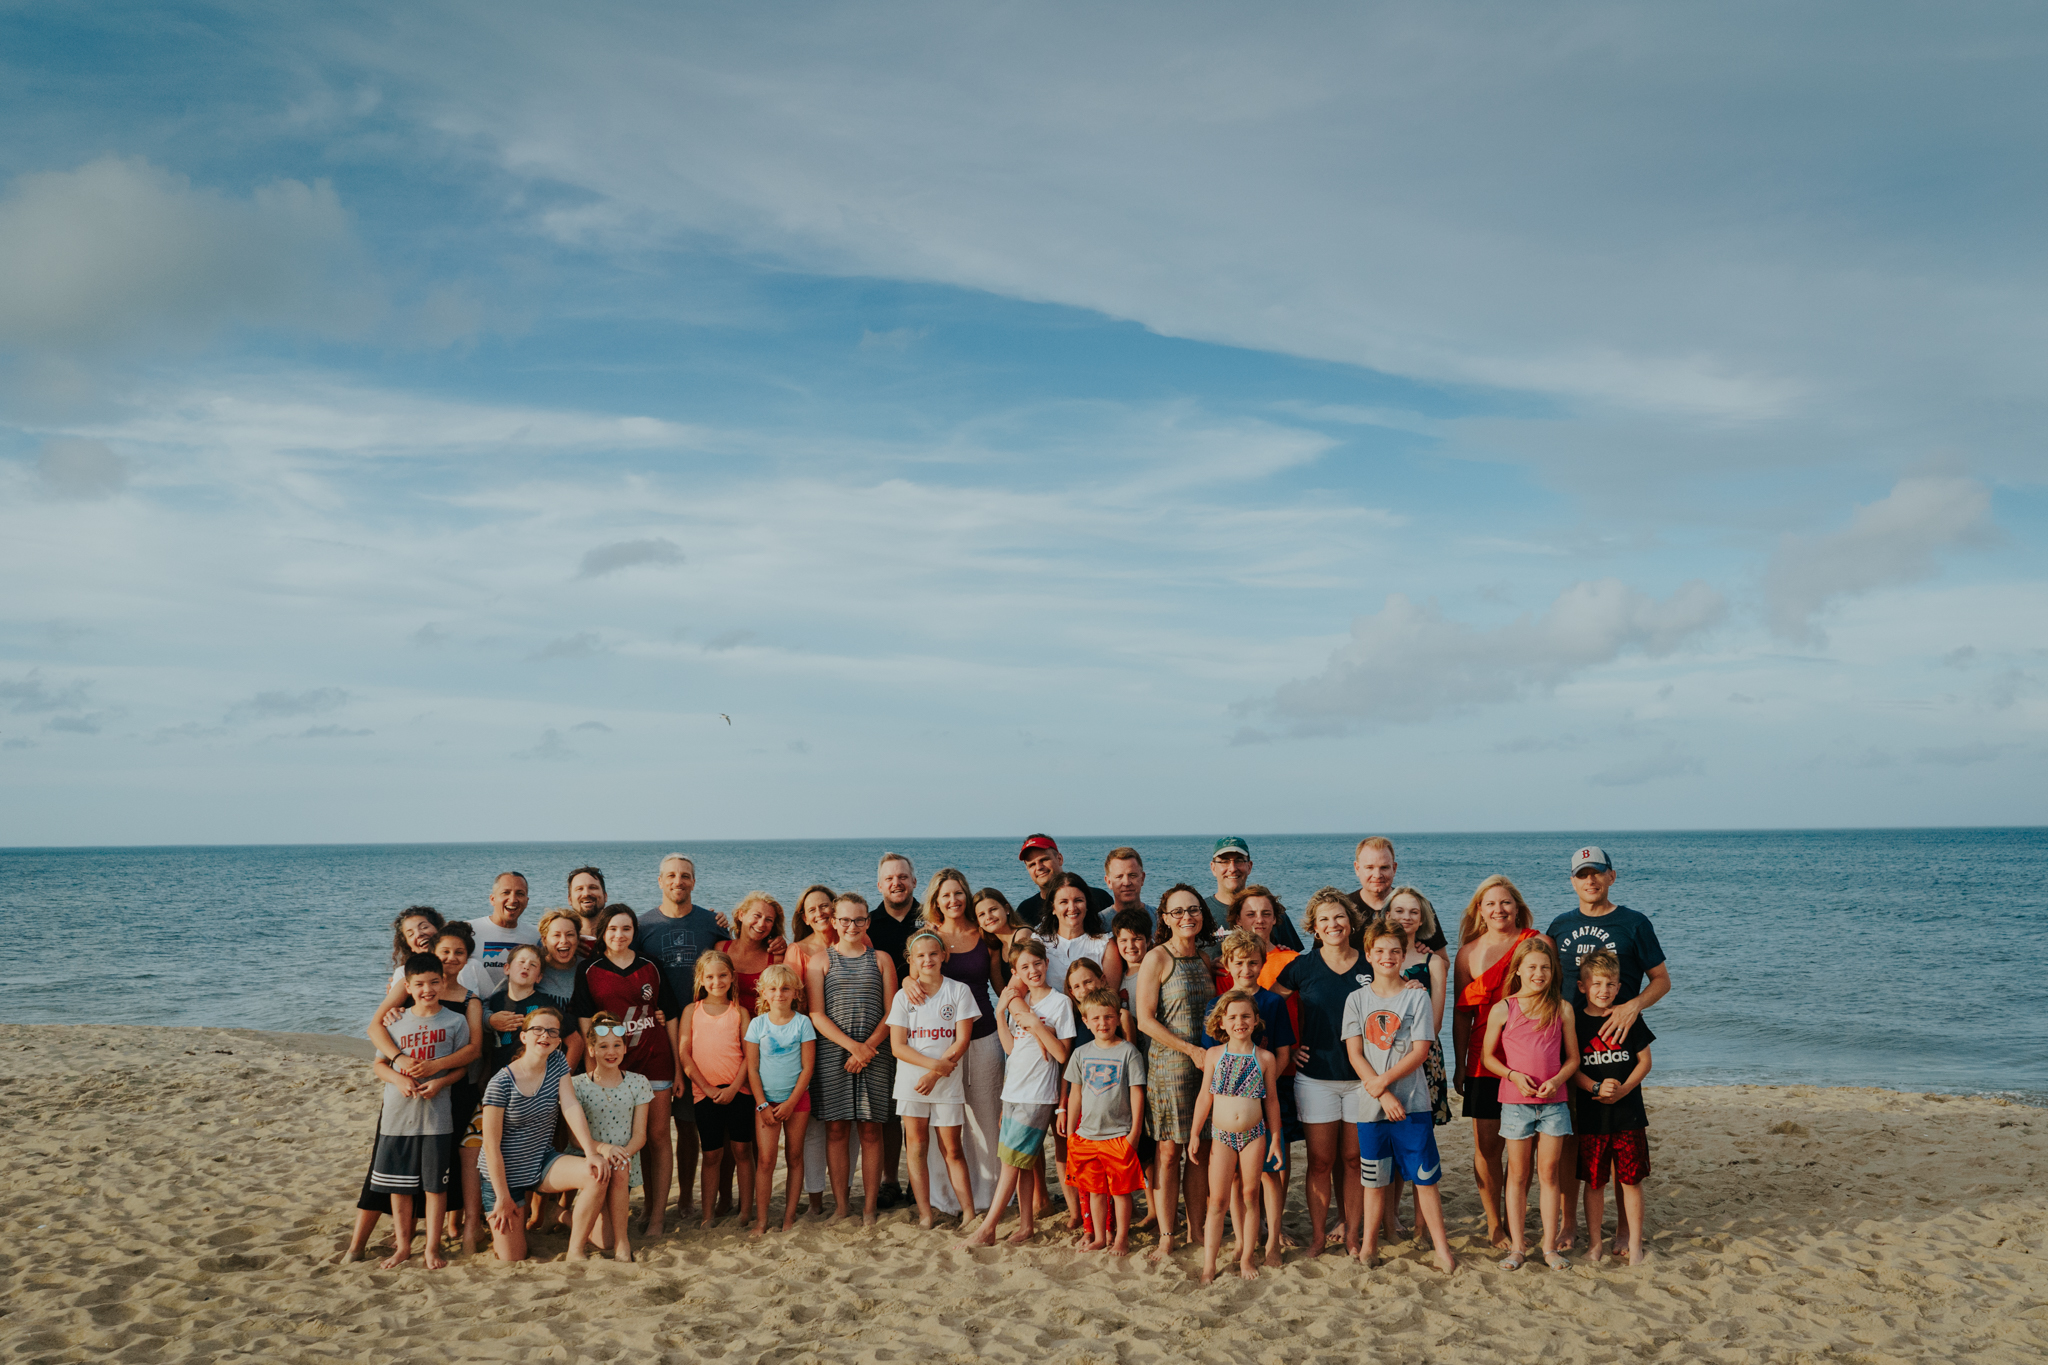 darcy_troutman_photography (18 of 25).jpg